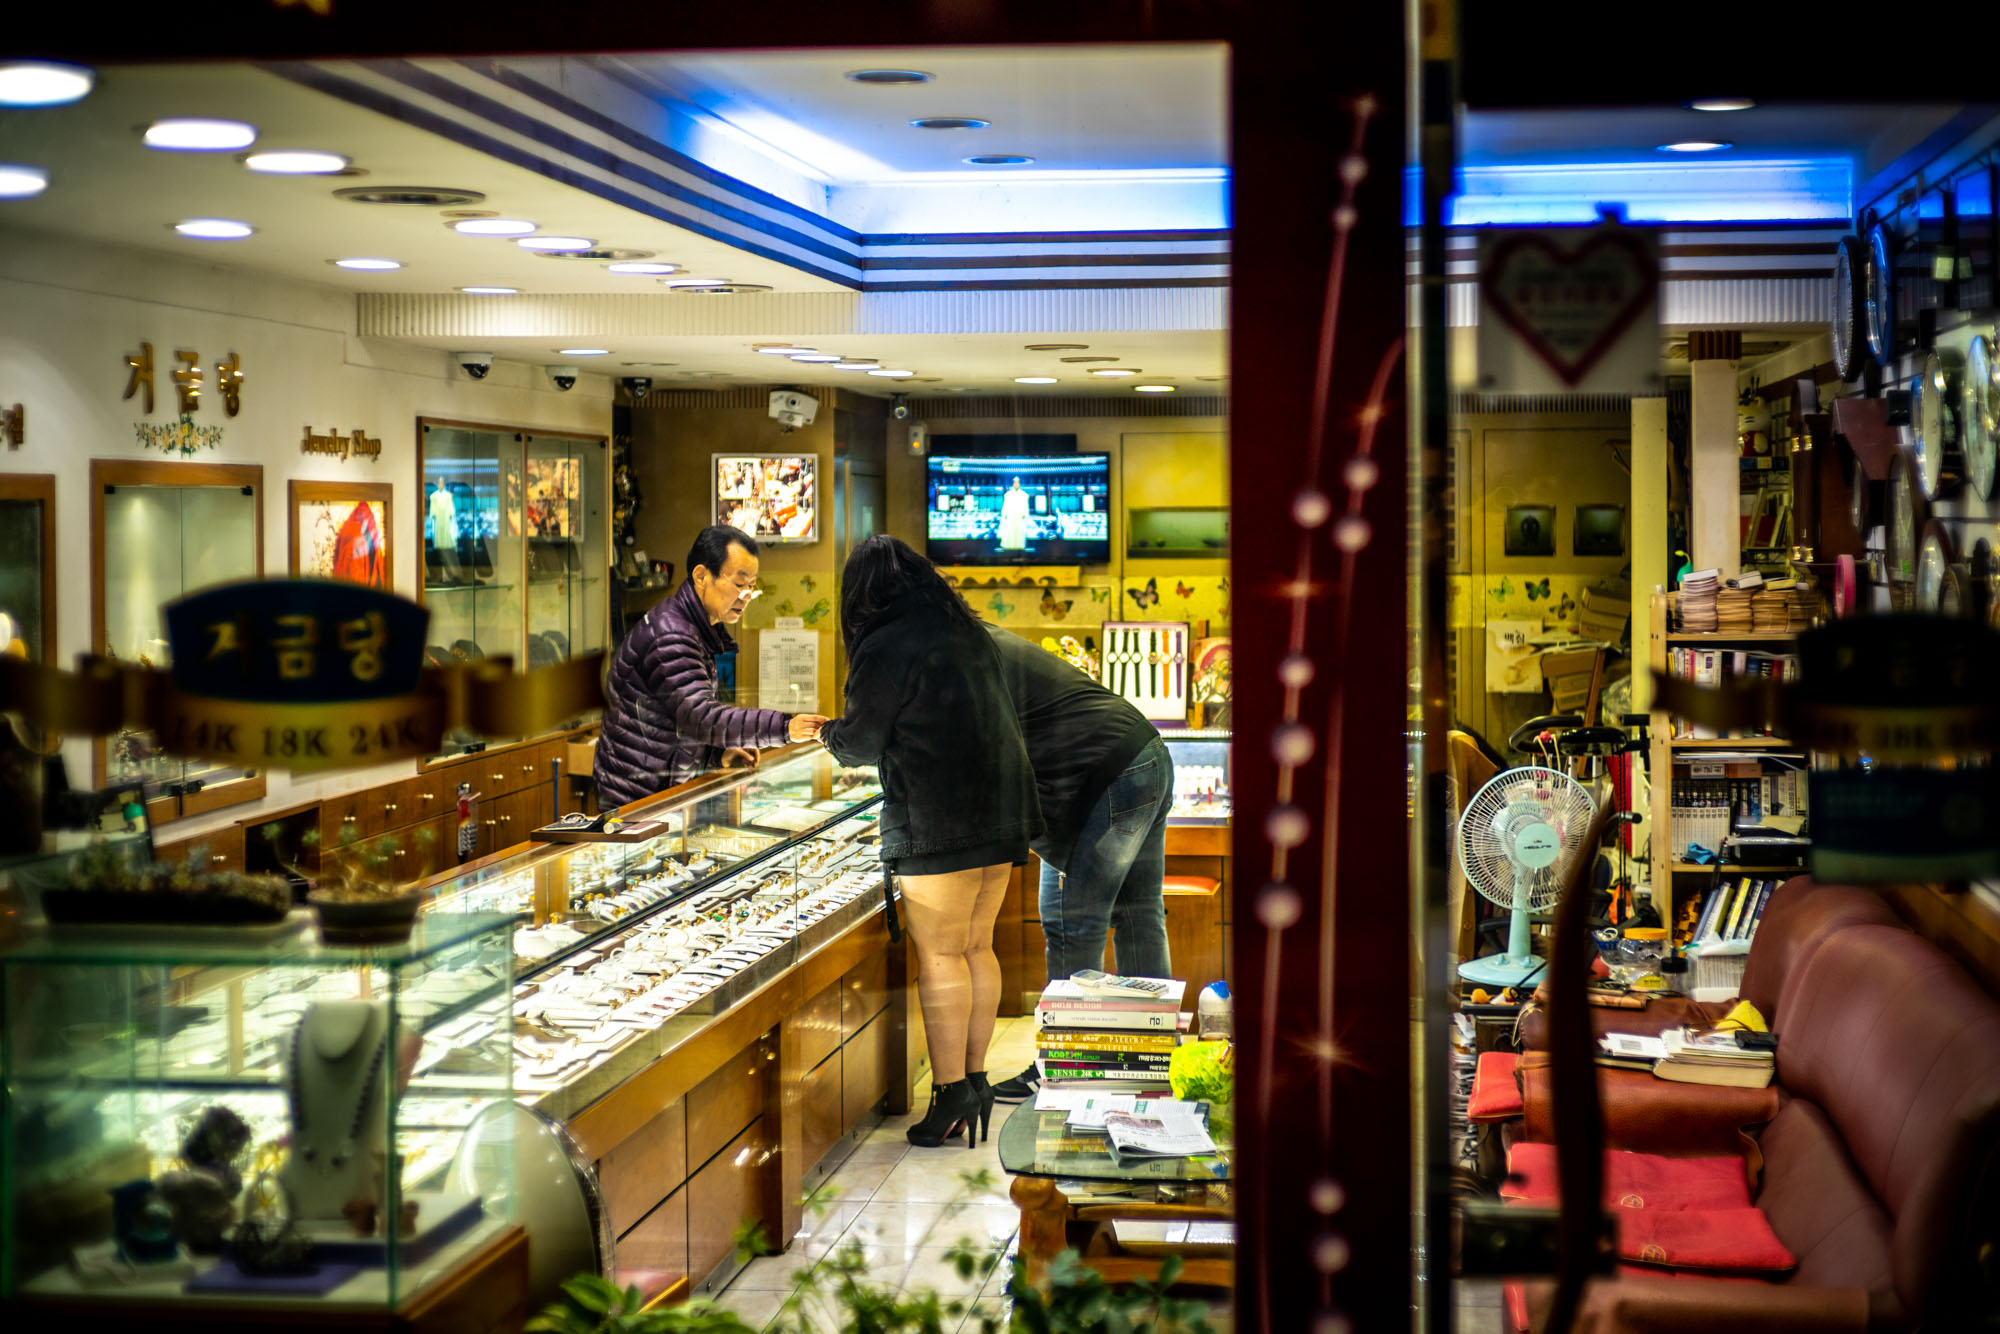 Lately, I've been noticing that my gaze has been more frequently veering towards window shops. These intentionally public viewports often frame unintentionally intimate scenes. My mind is instantly flash-flooded with imaginary stories; it can't help but attach meaning to these strangers' faces. Here, for example, a man buys his much younger lover a new ring while tiptoeing around a minefield of expectations. Both his and hers, both about the expense and the secrecy of their arrangement.